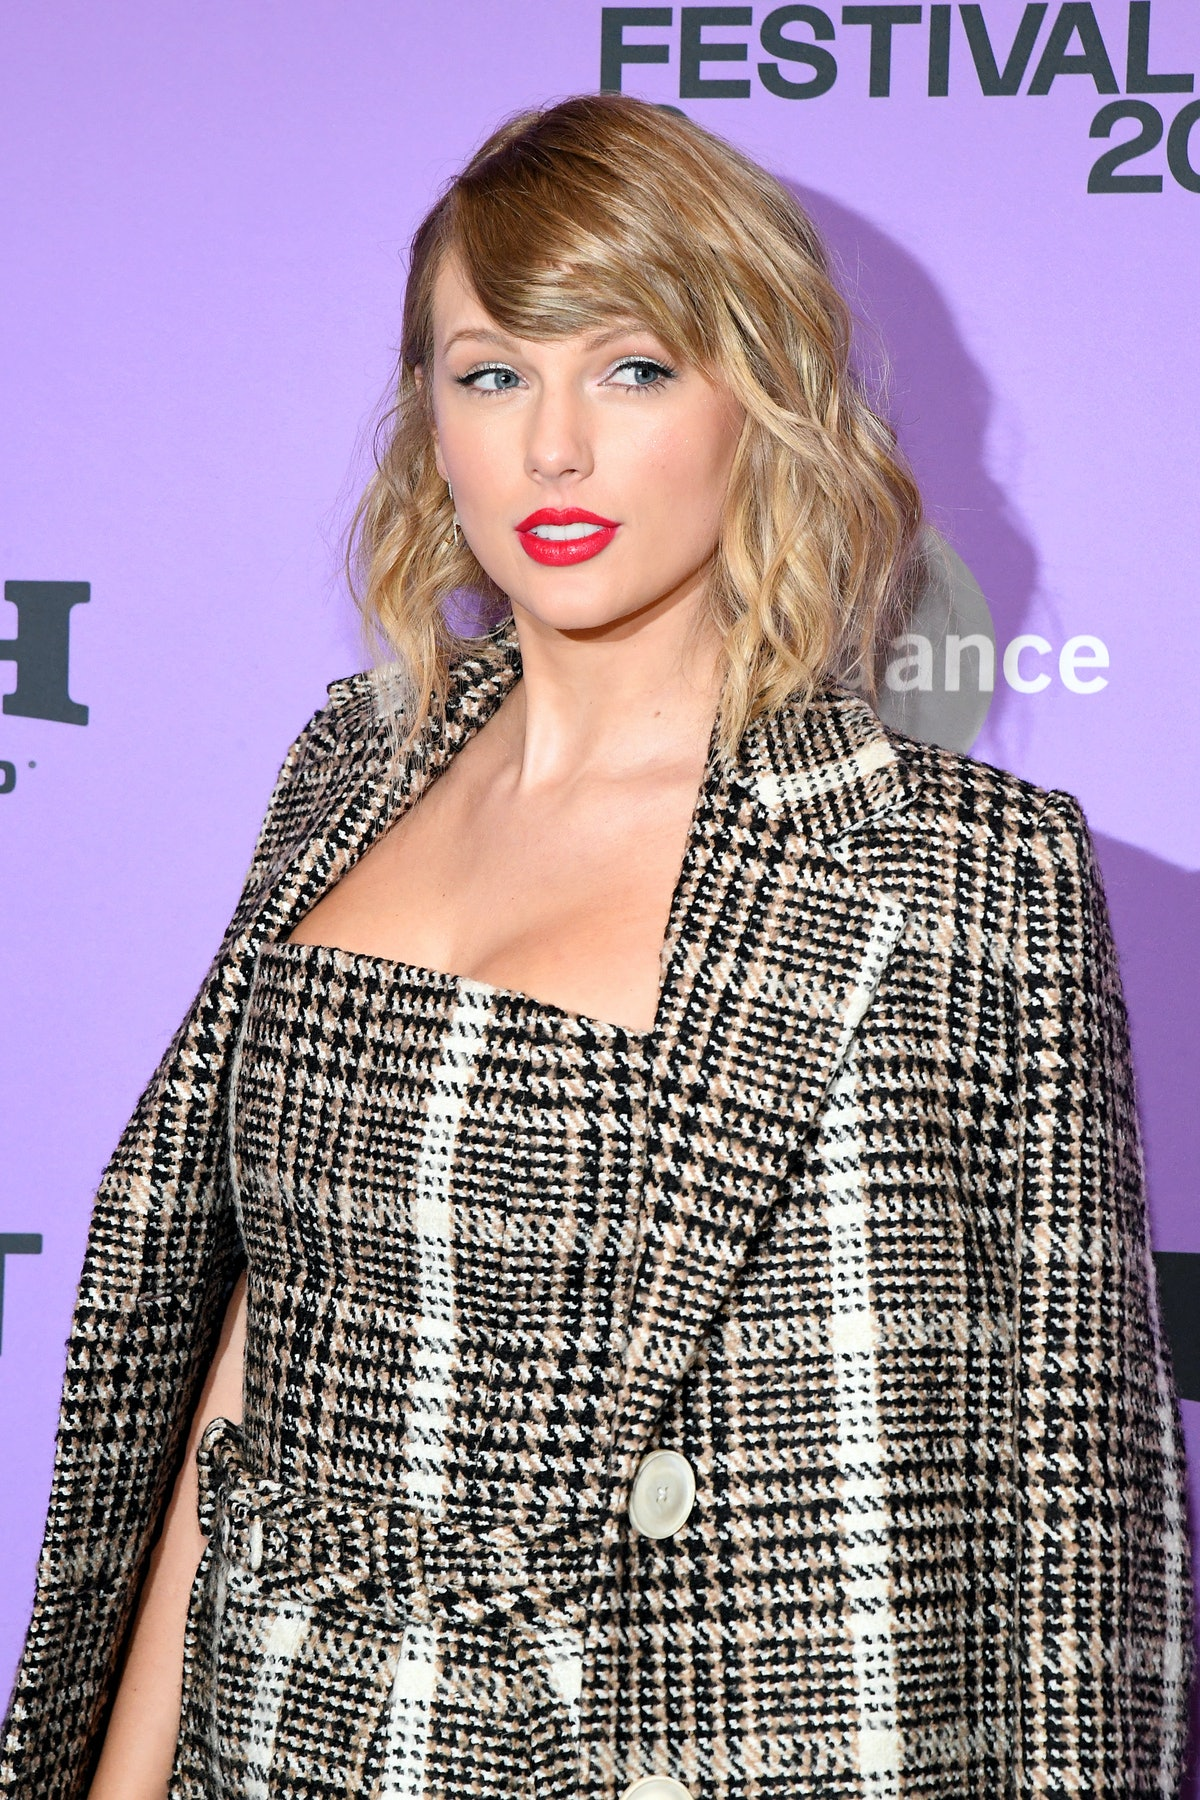 Taylor Swift hits the red carpet in plaid.